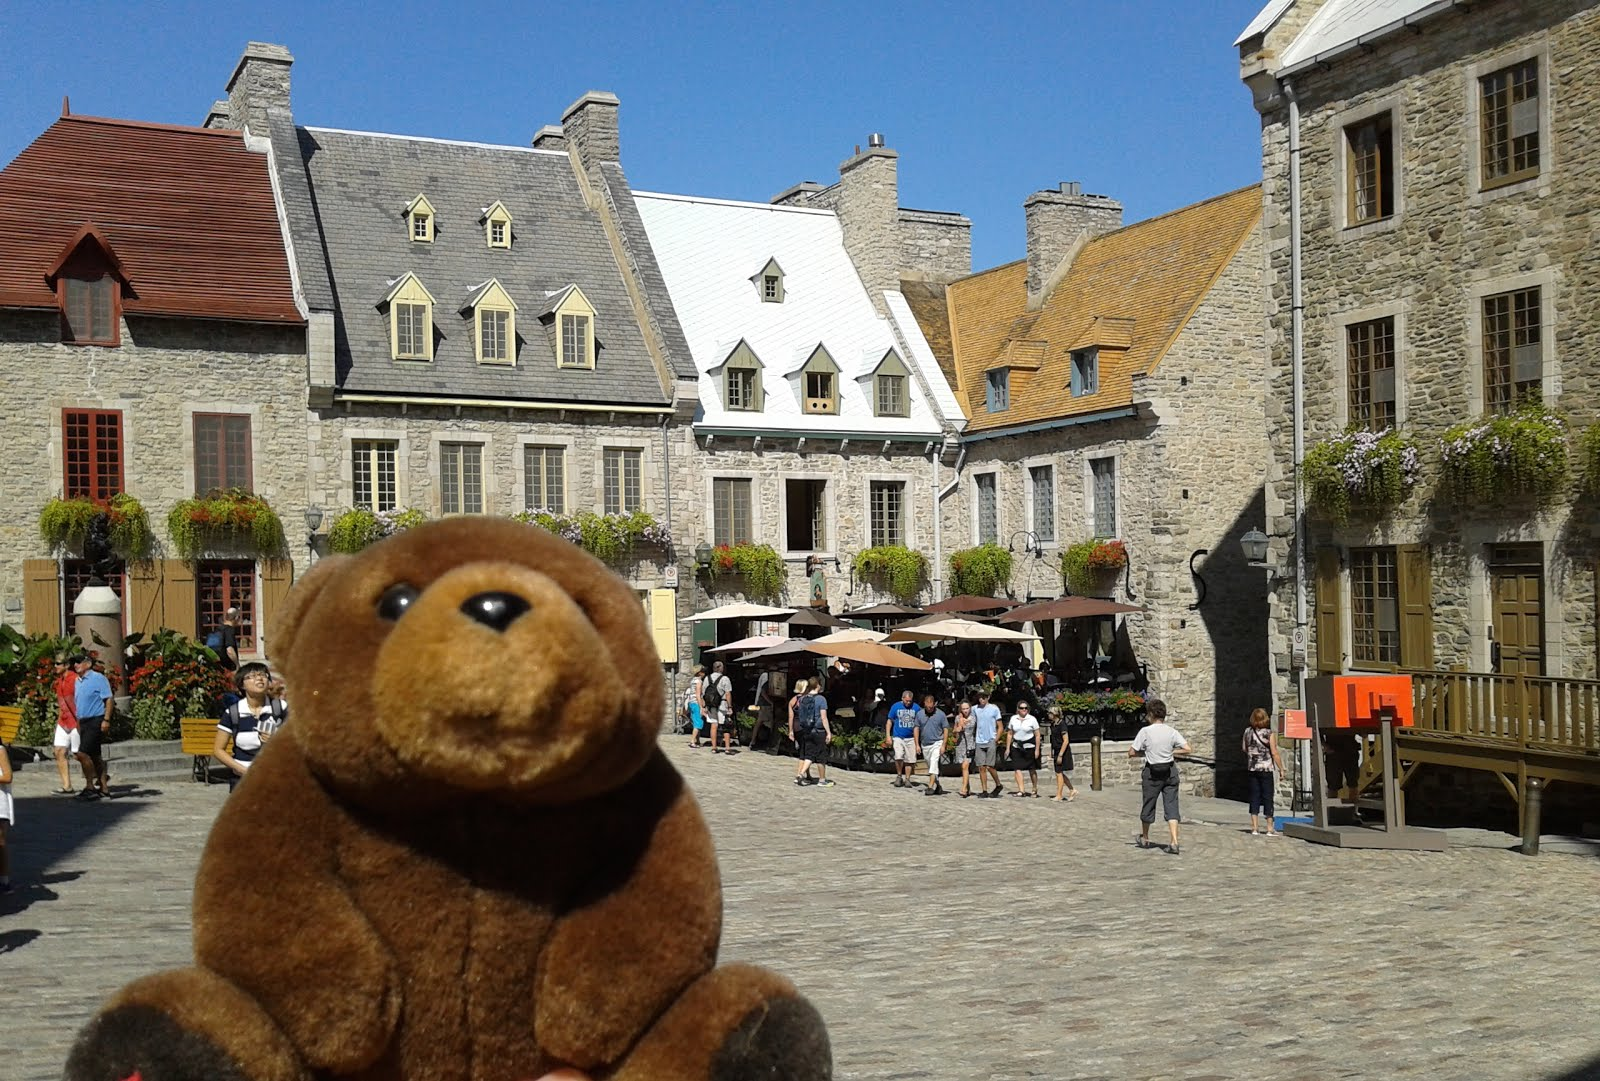 Teddy Bear in Quebec